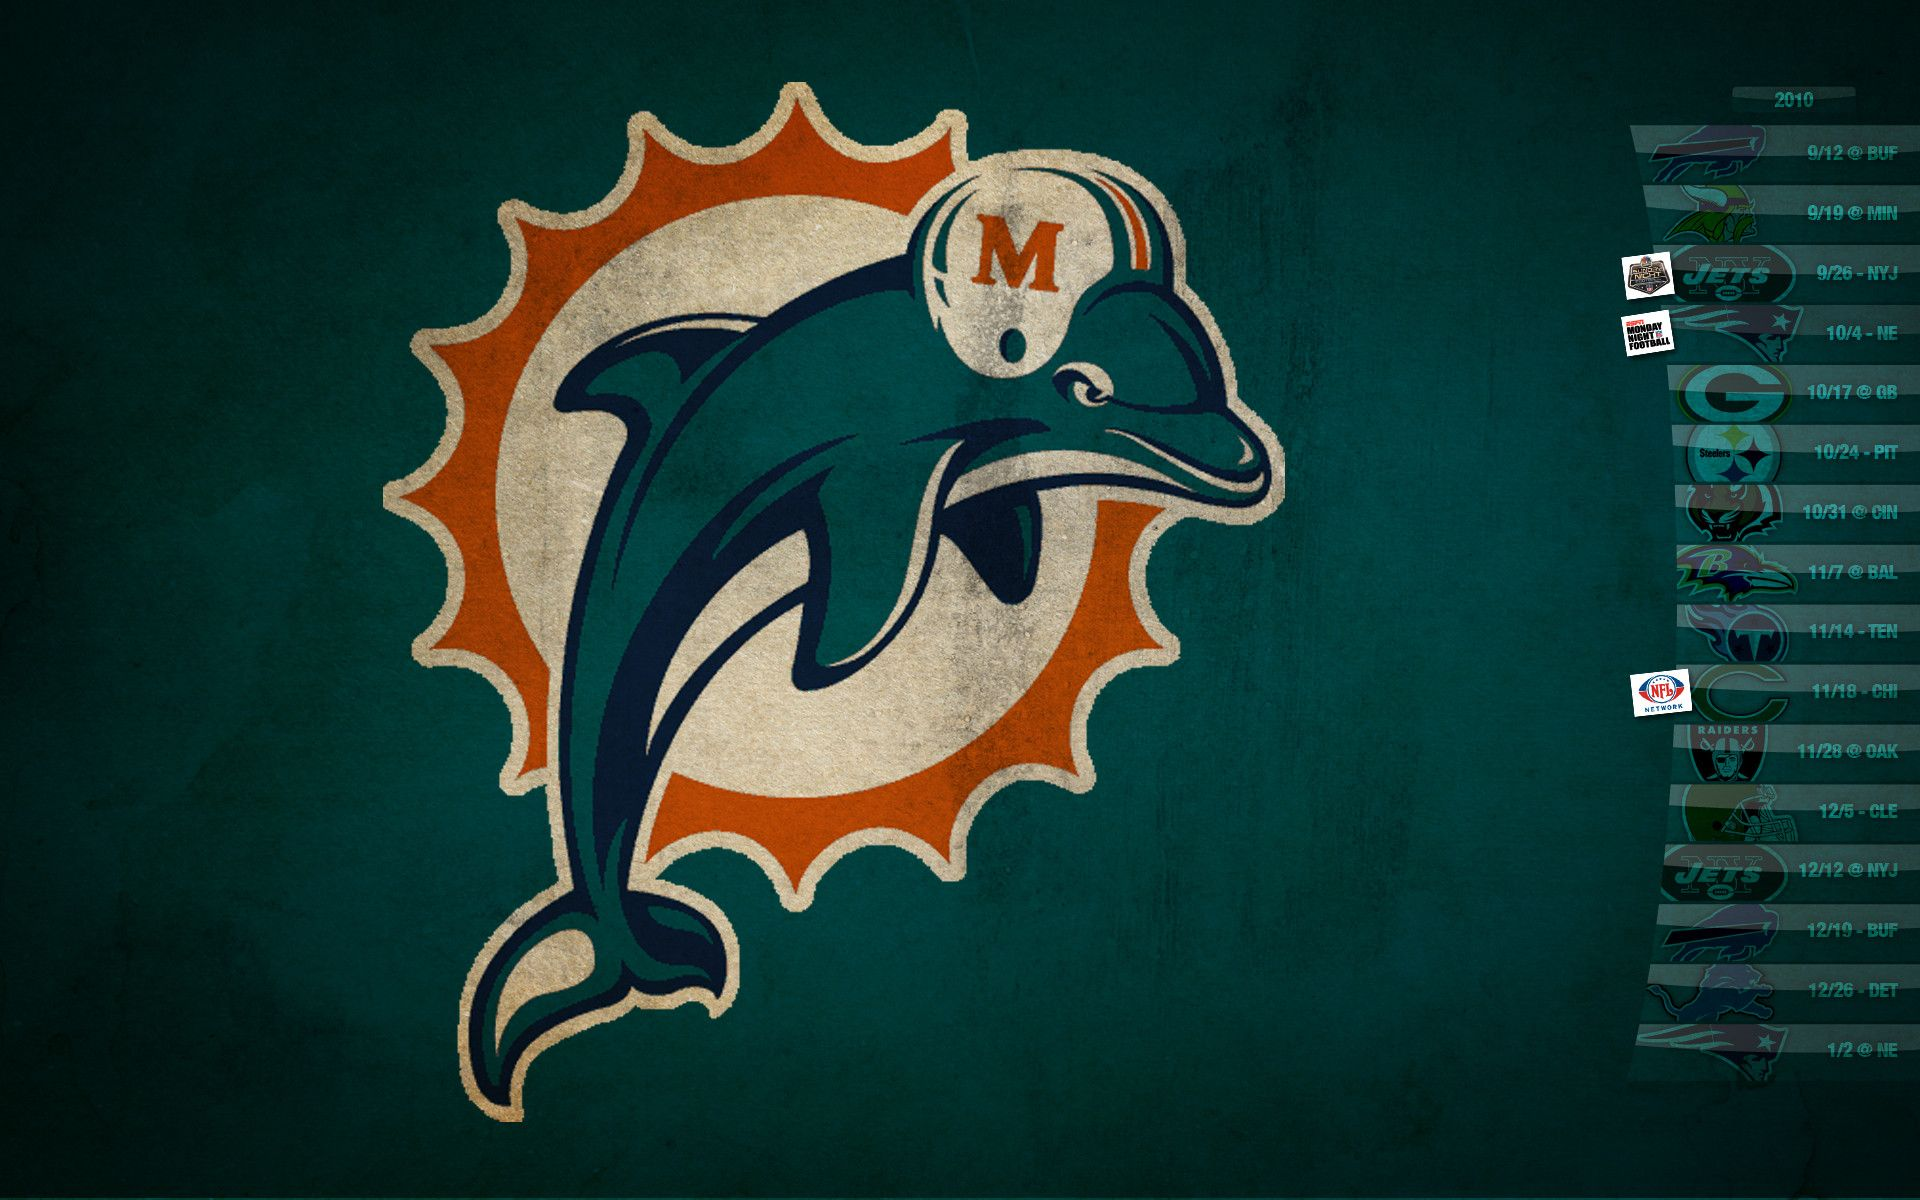 Miami dolphins schedule wallpaper 1024768 miami dolphin miami dolphins schedule wallpaper 1024768 miami dolphin wallpapers 41 wallpapers adorable voltagebd Image collections